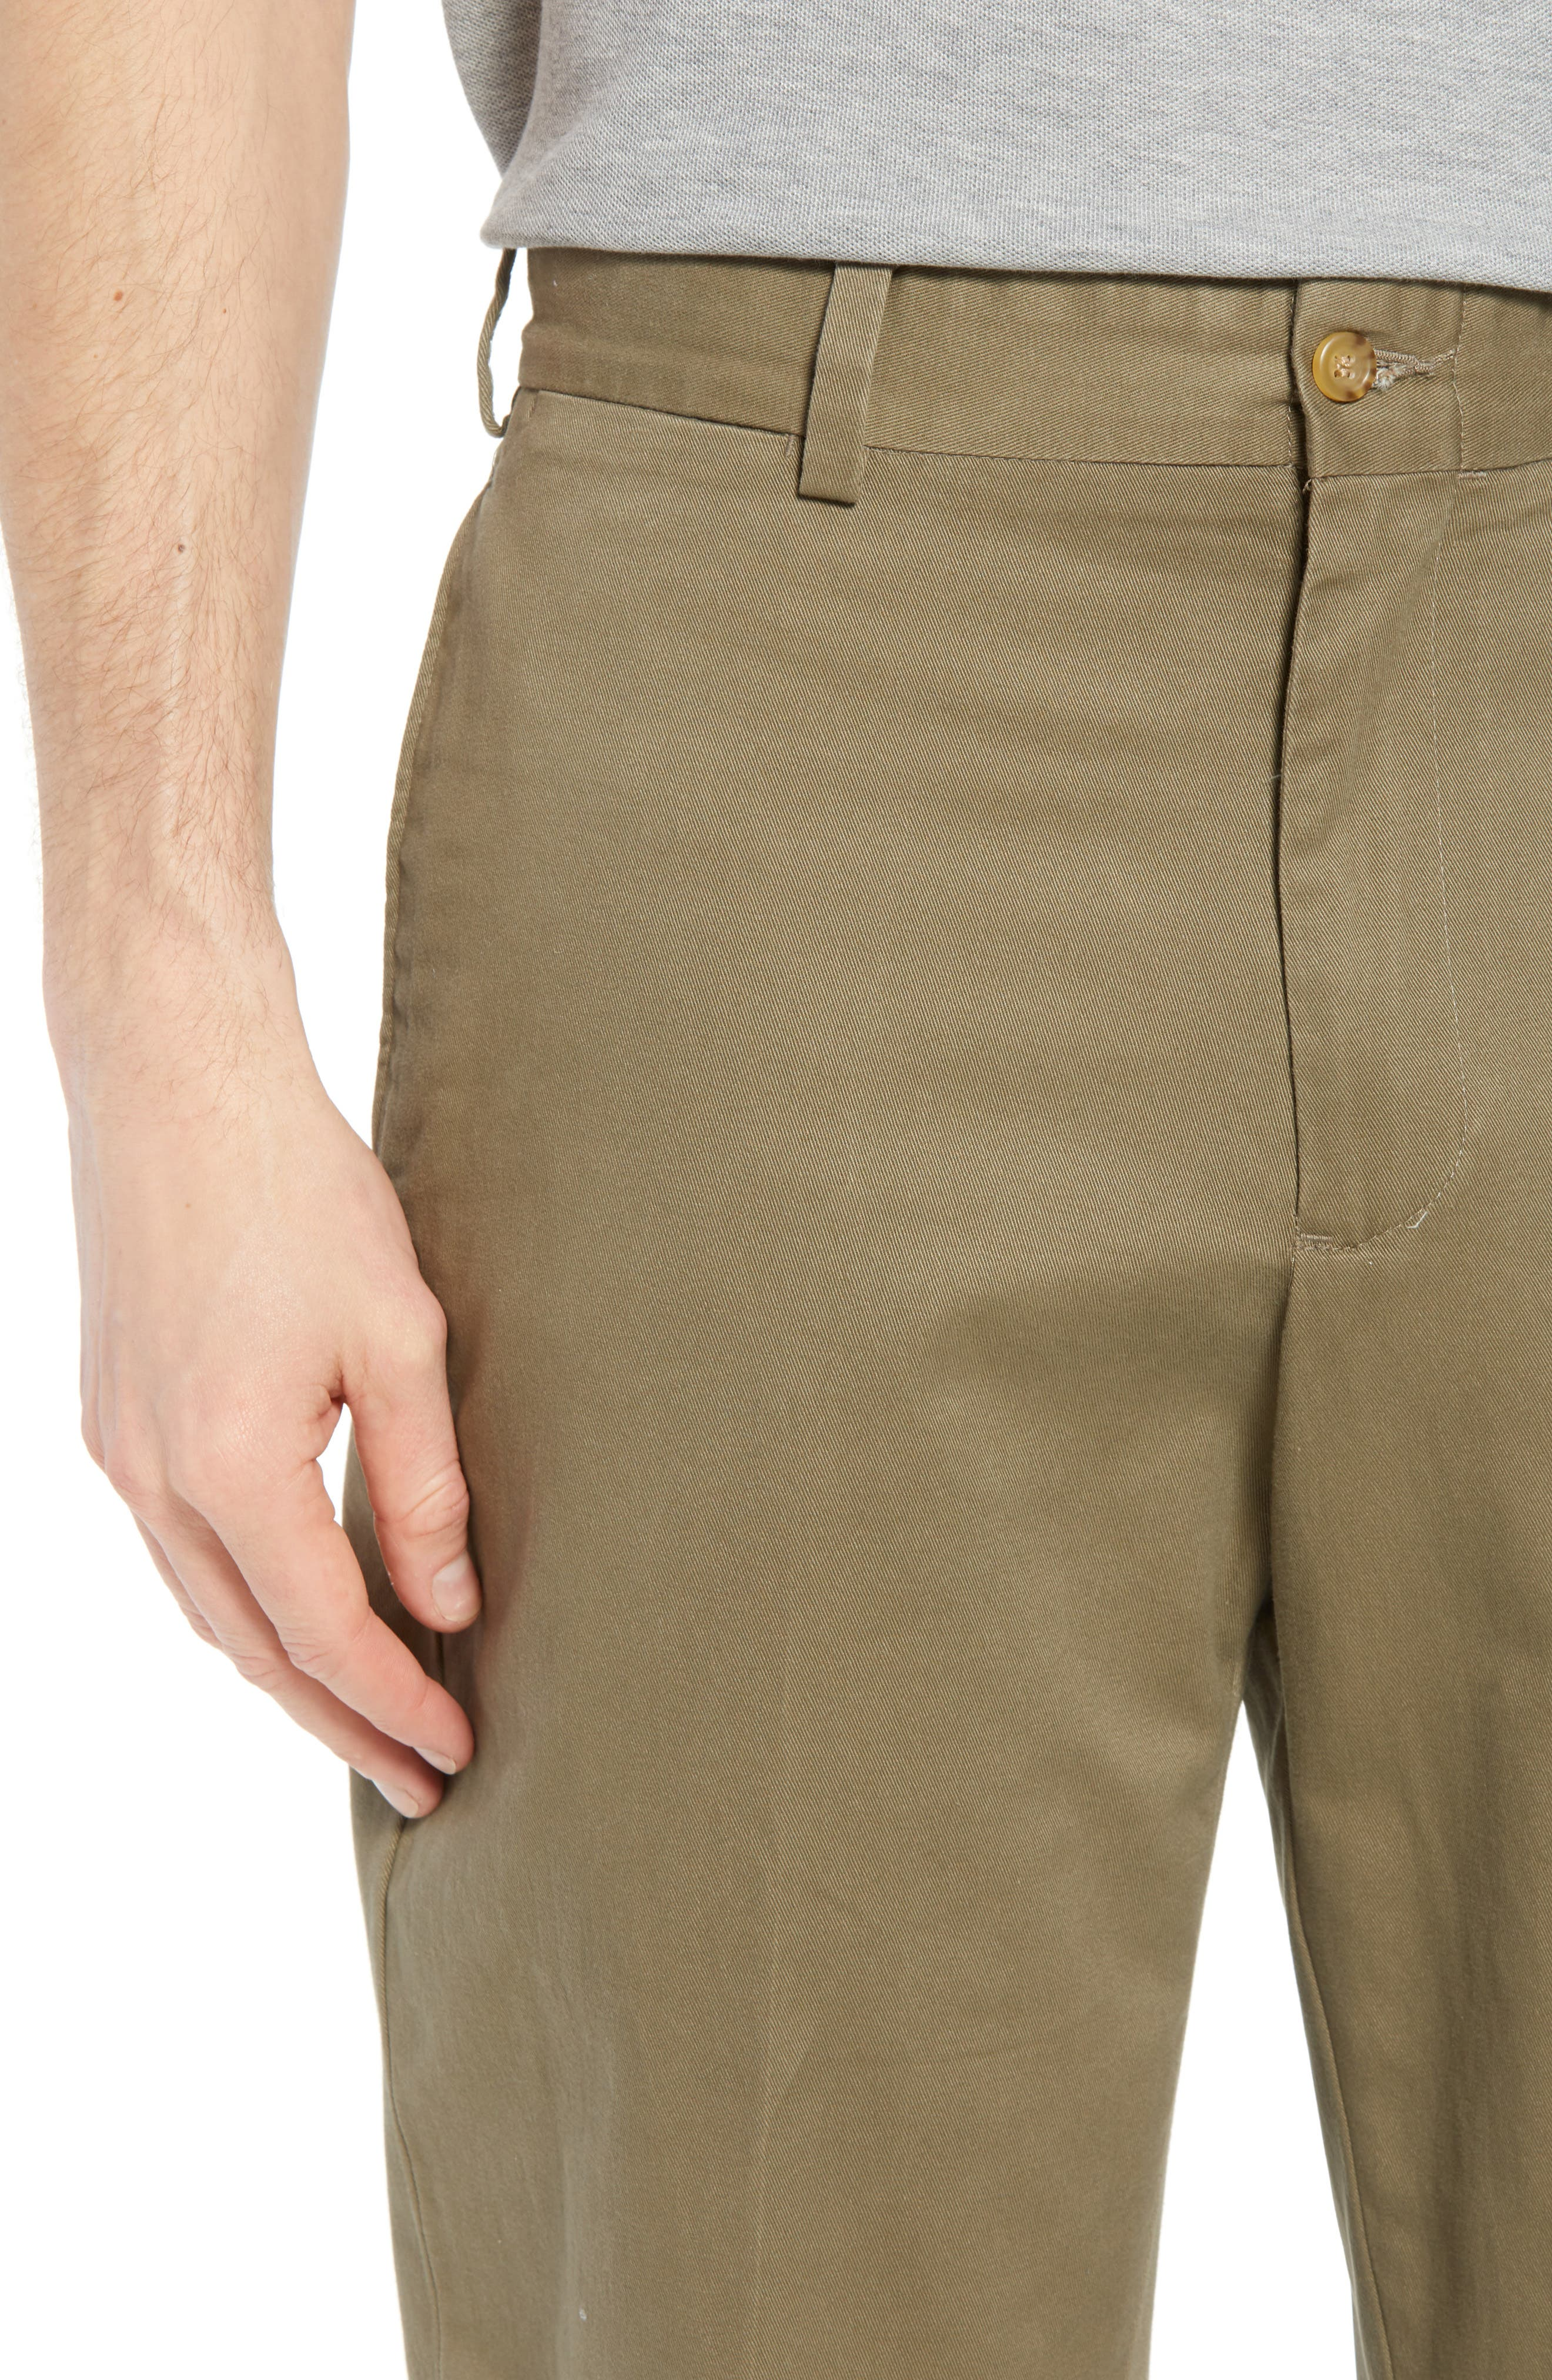 M2 Classic Fit Flat Front Vintage Twill Pants,                             Alternate thumbnail 4, color,                             Olive